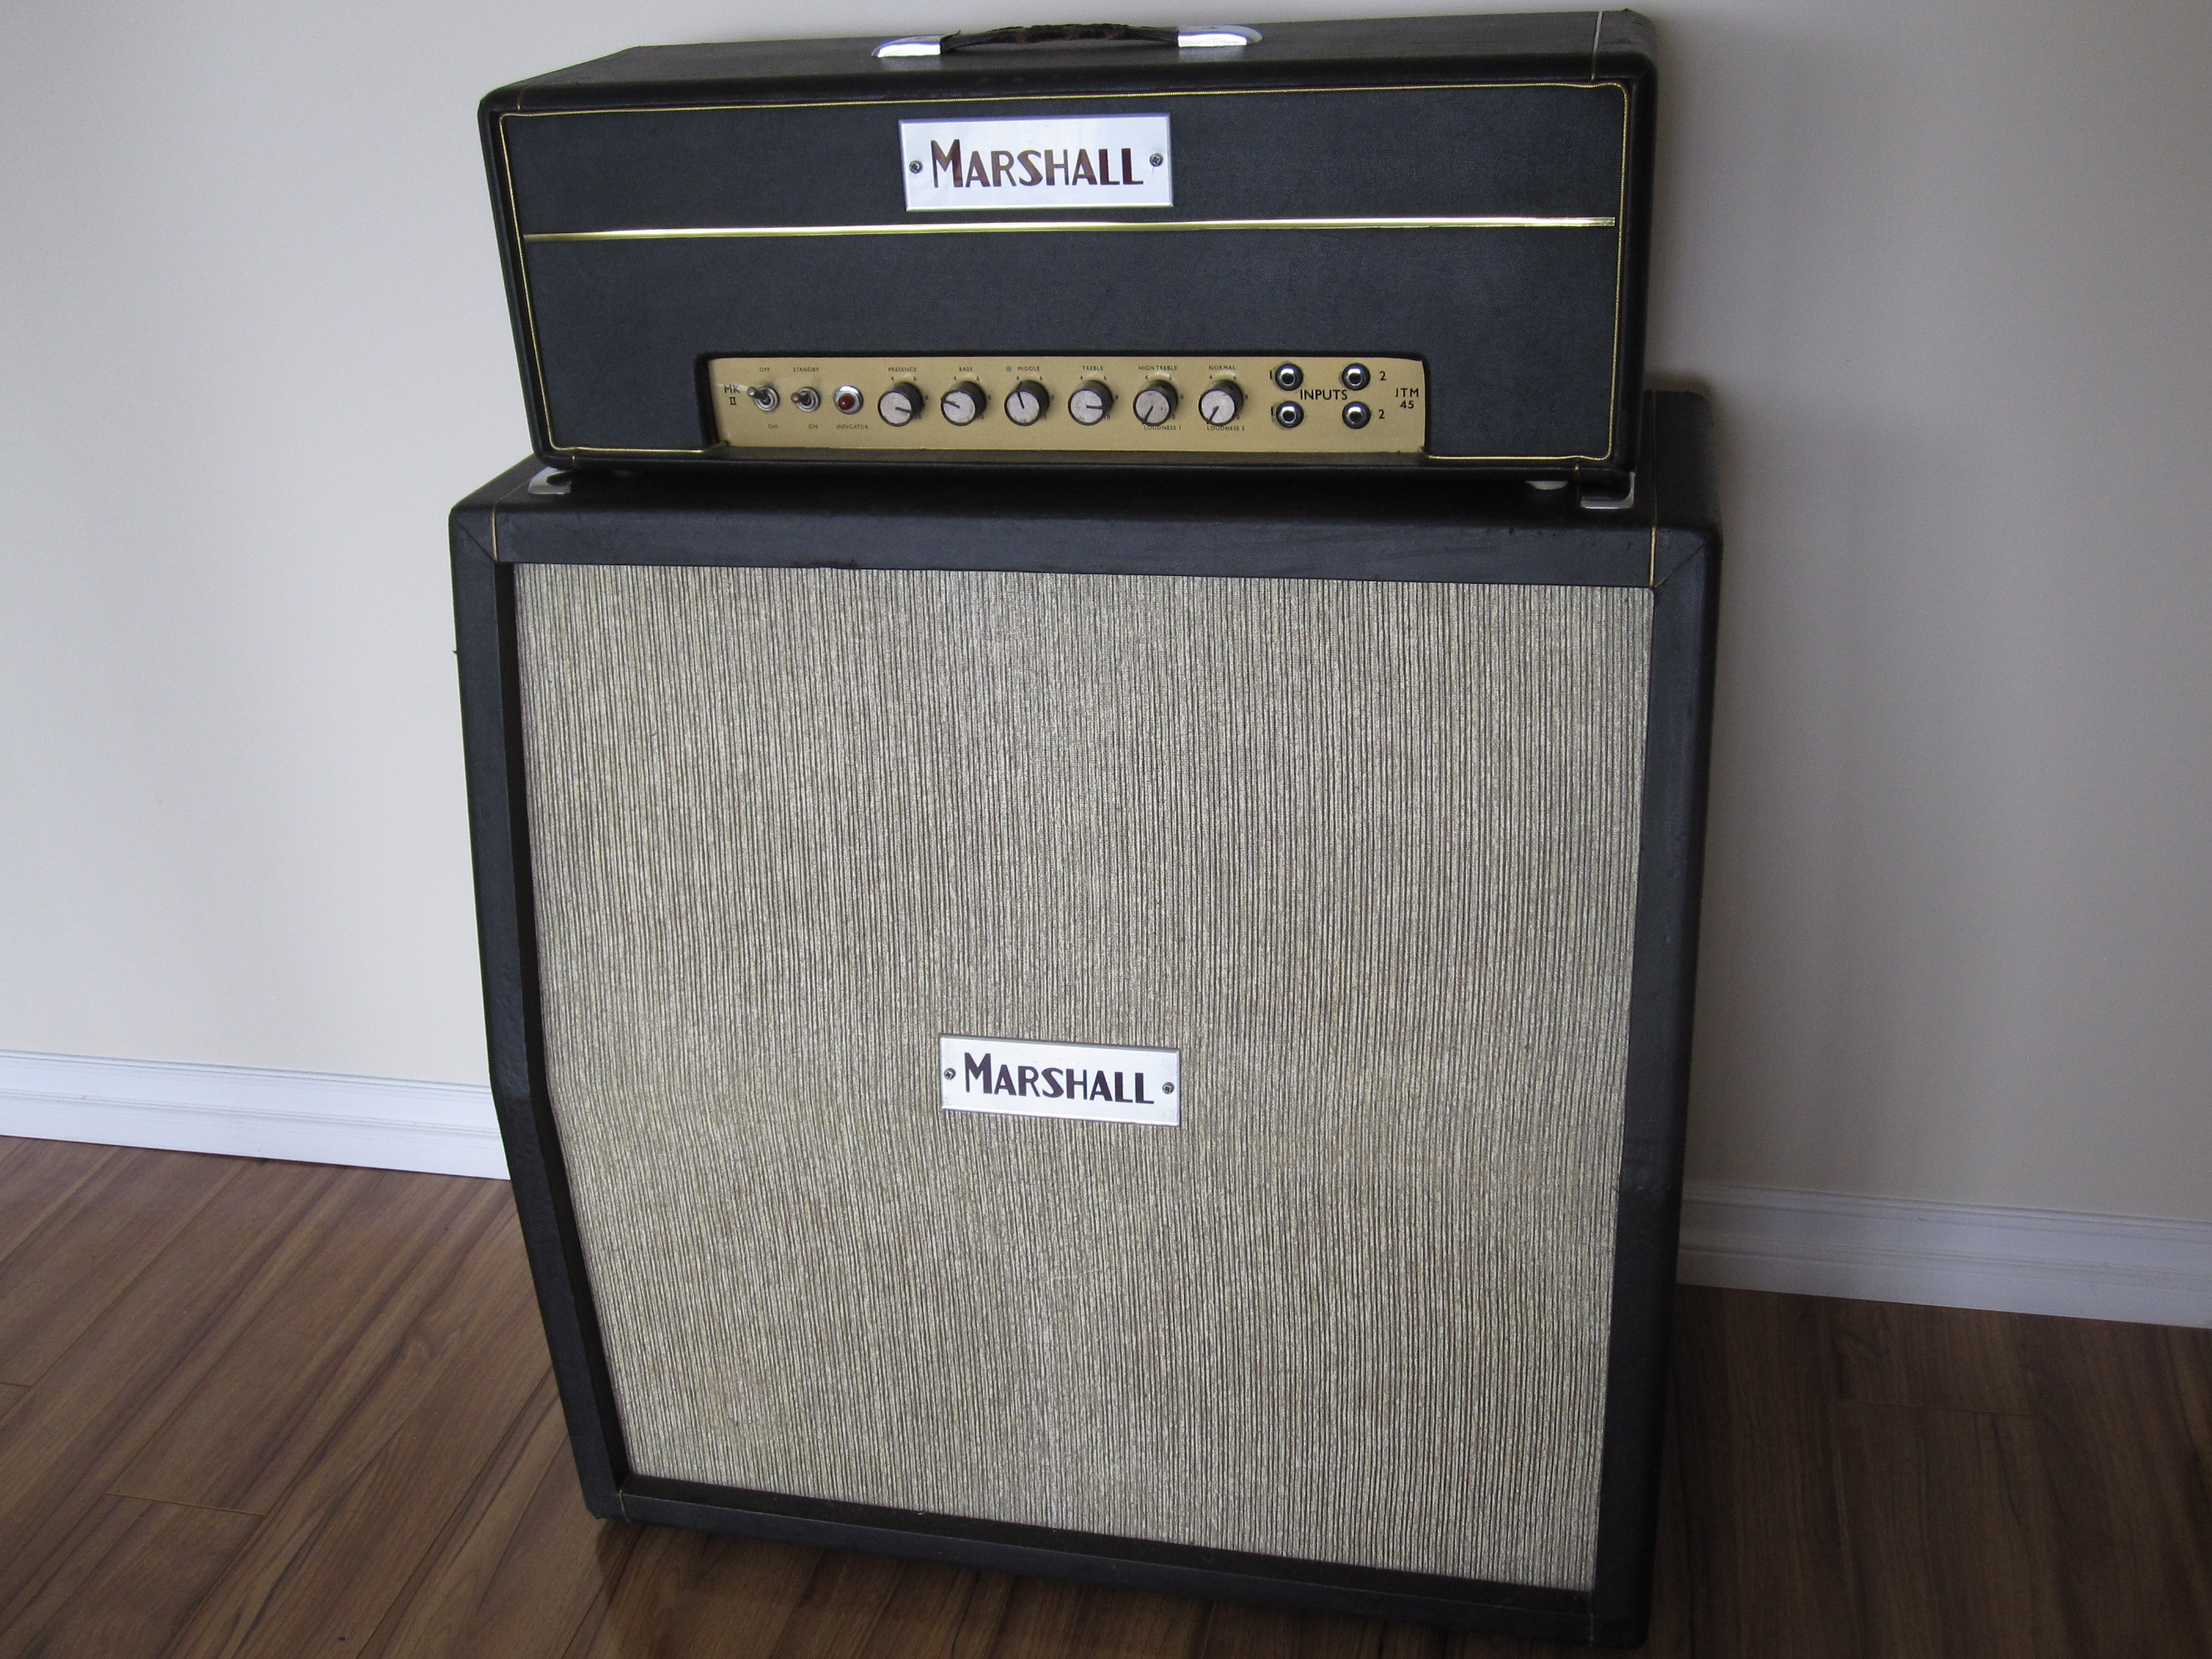 Dating a marshall amplifier